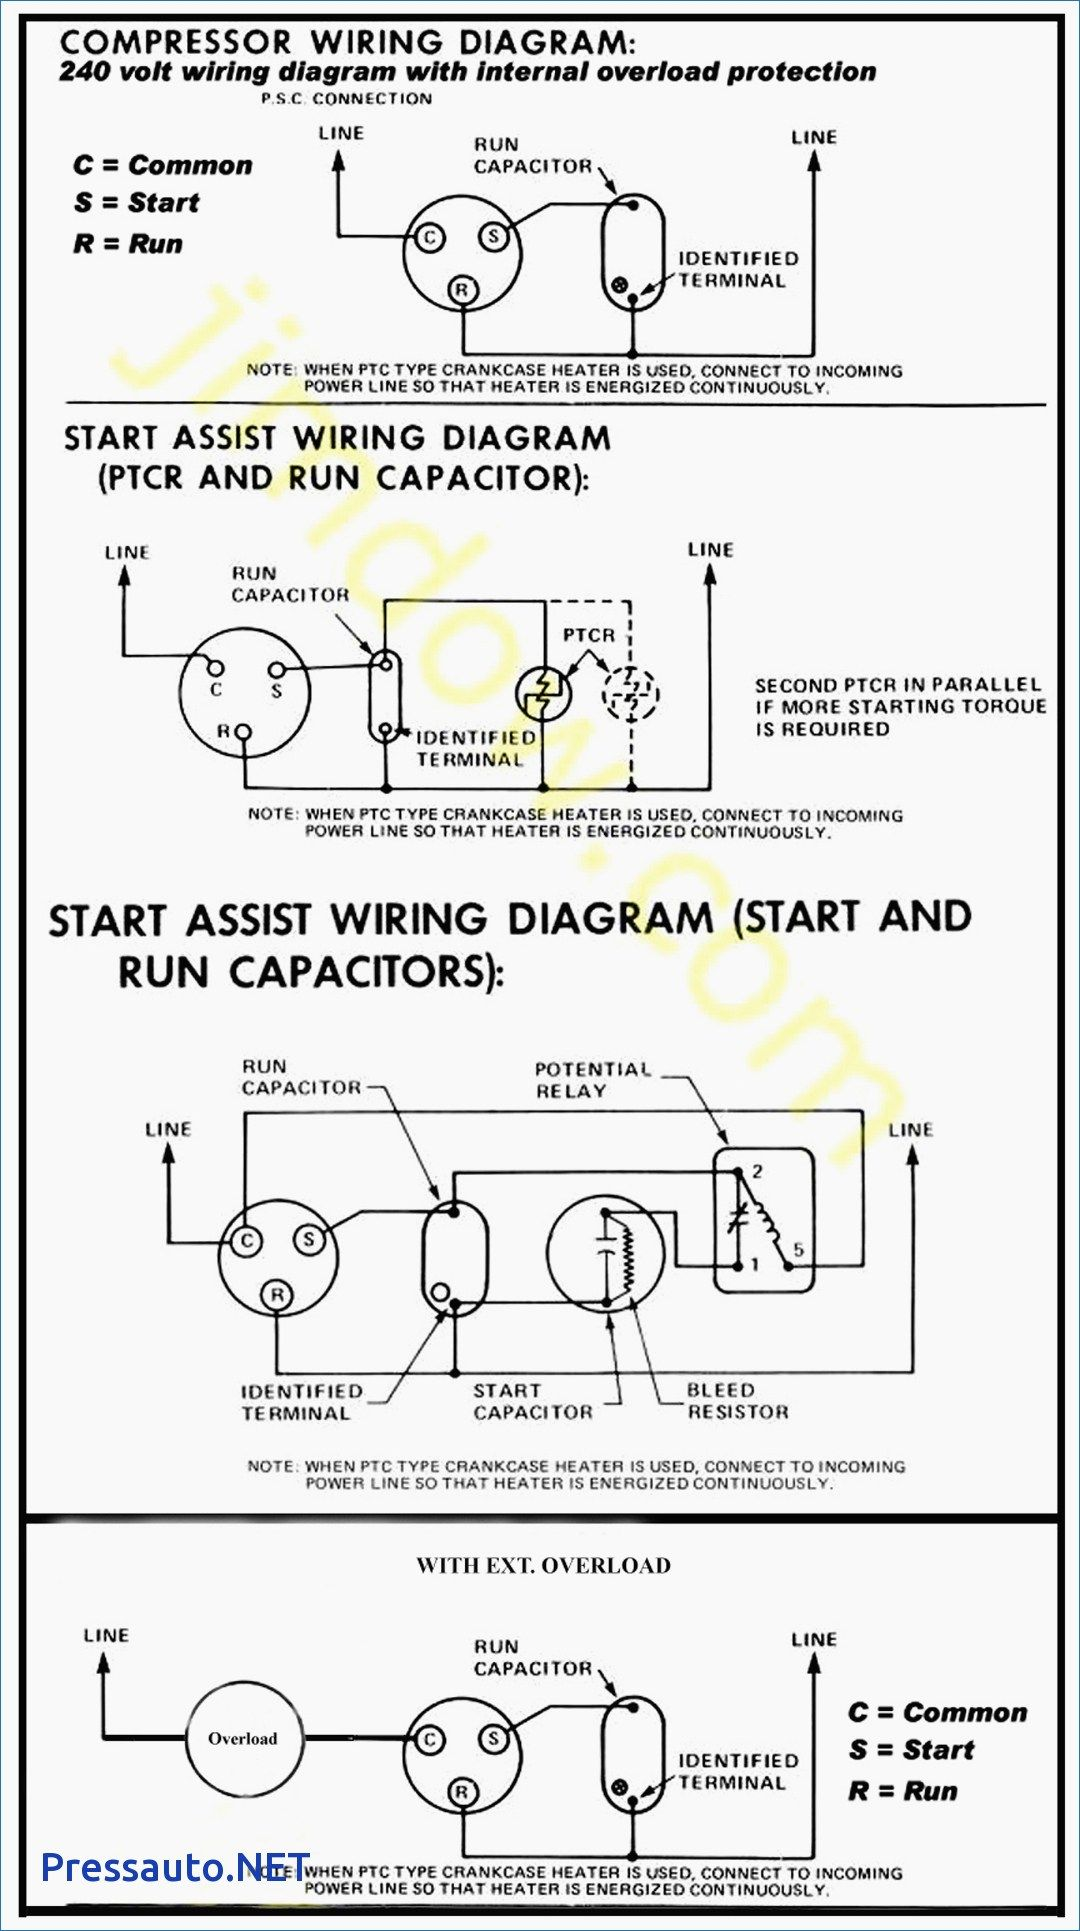 Ac Hard Start Kit Wiring Diagram - Wiring Diagrams Hidden Hard Start Kit Wiring Diagram Fan on